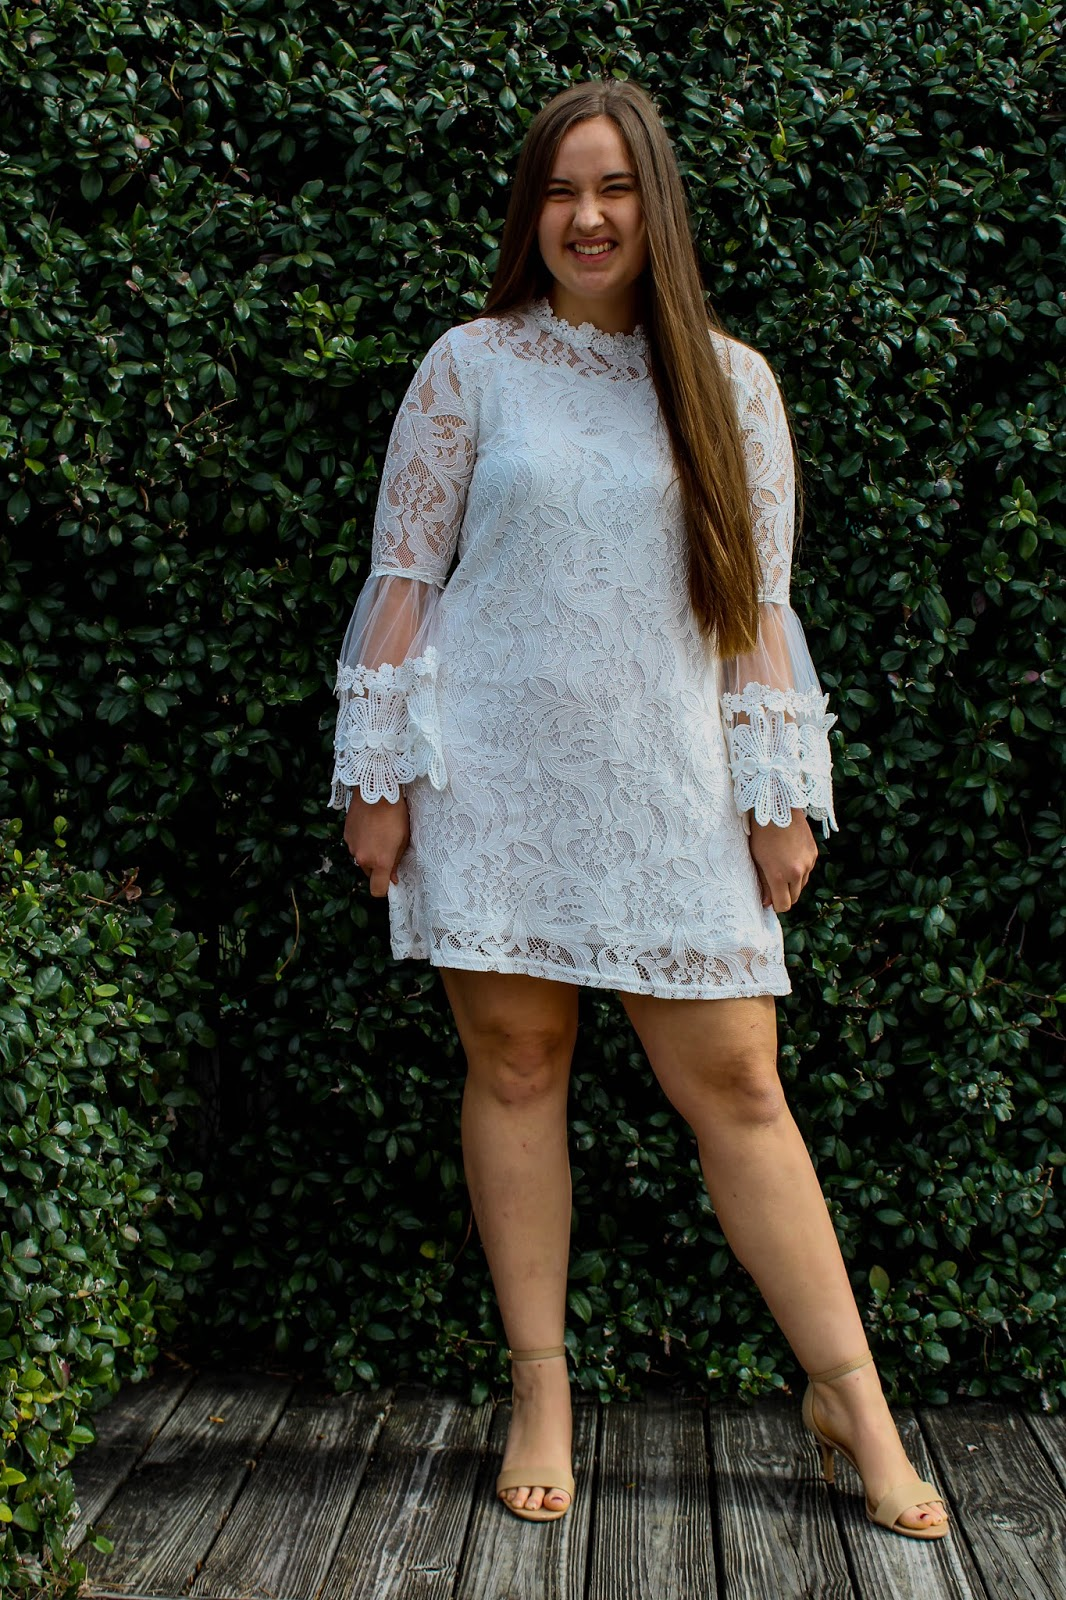 Girl wearing white bell sleeve dress